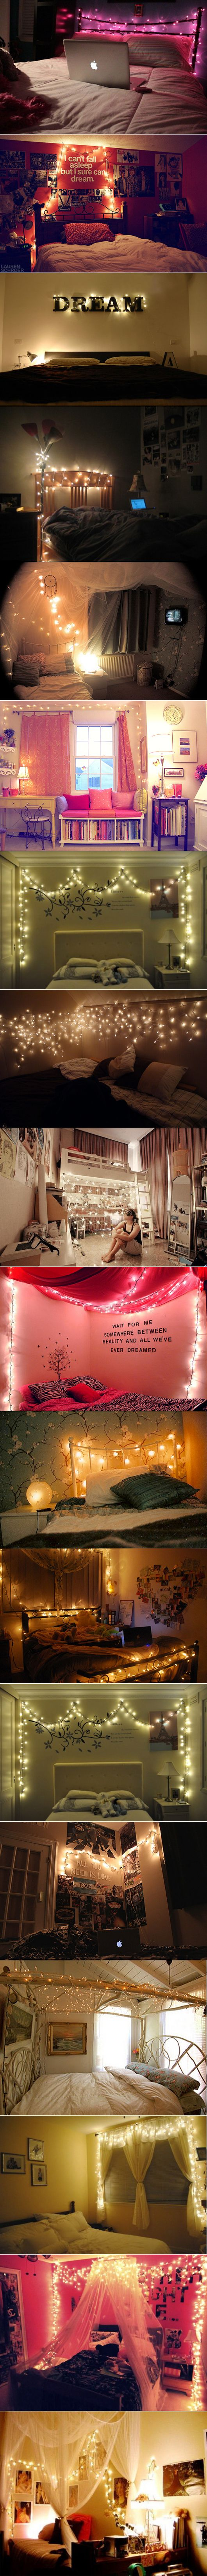 Apparently all perfect teen rooms have christmas lights and inspiring quotes